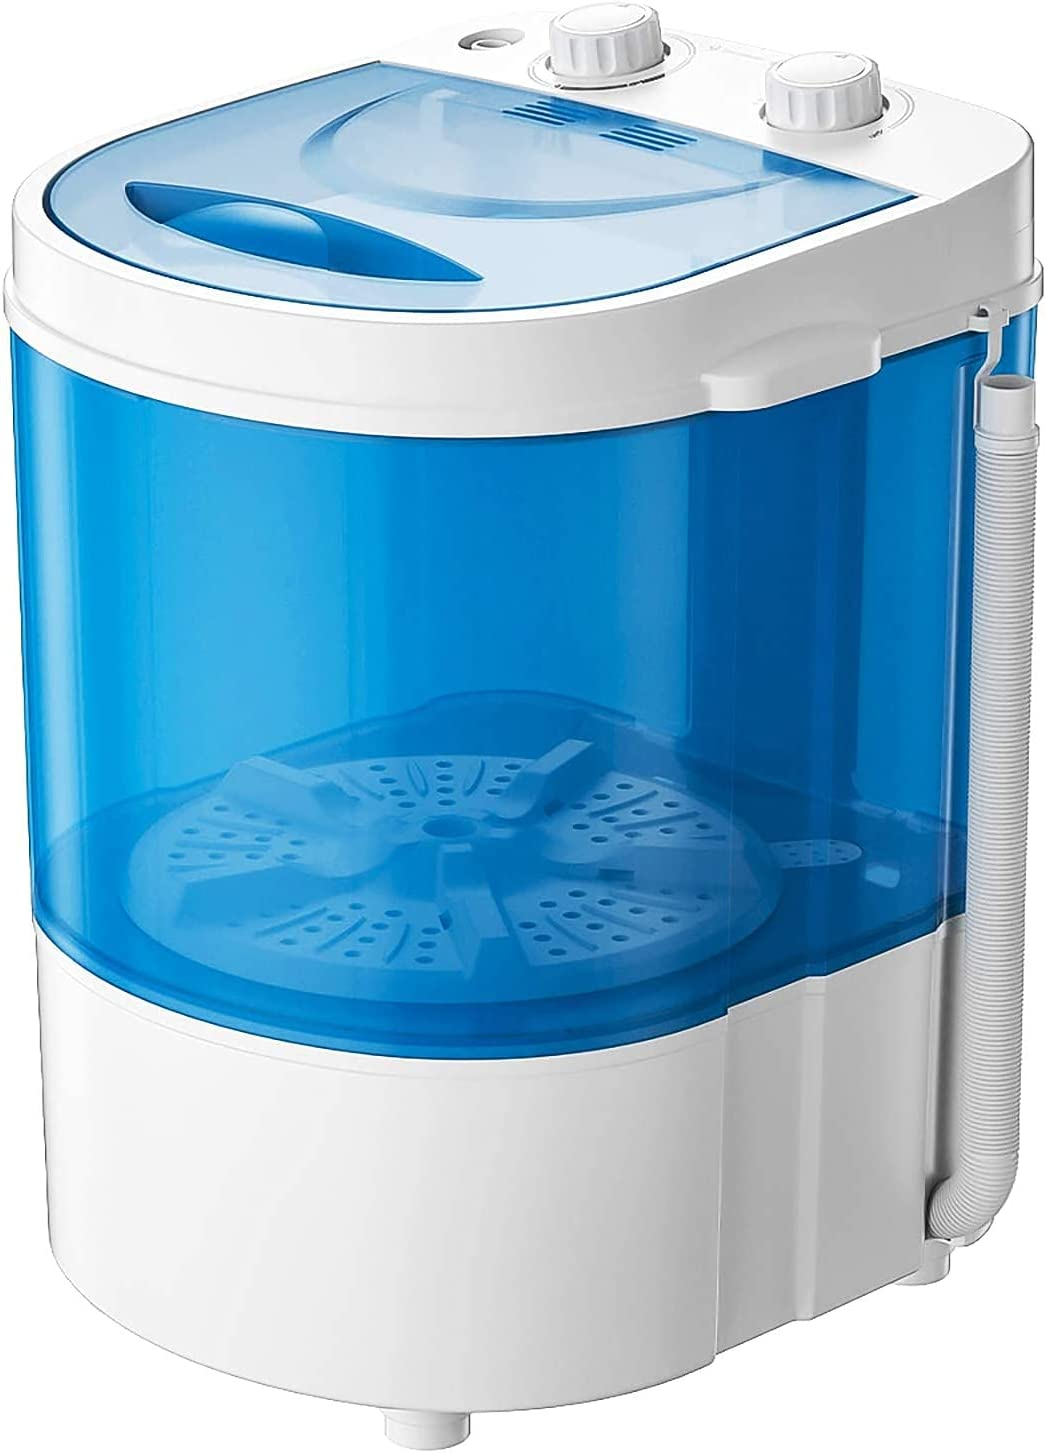 Auertech Portable Washing Machine, Mini Washer Compact Single Tub Laundry Machine for Dorms, Apartments, RVs, with Time Control